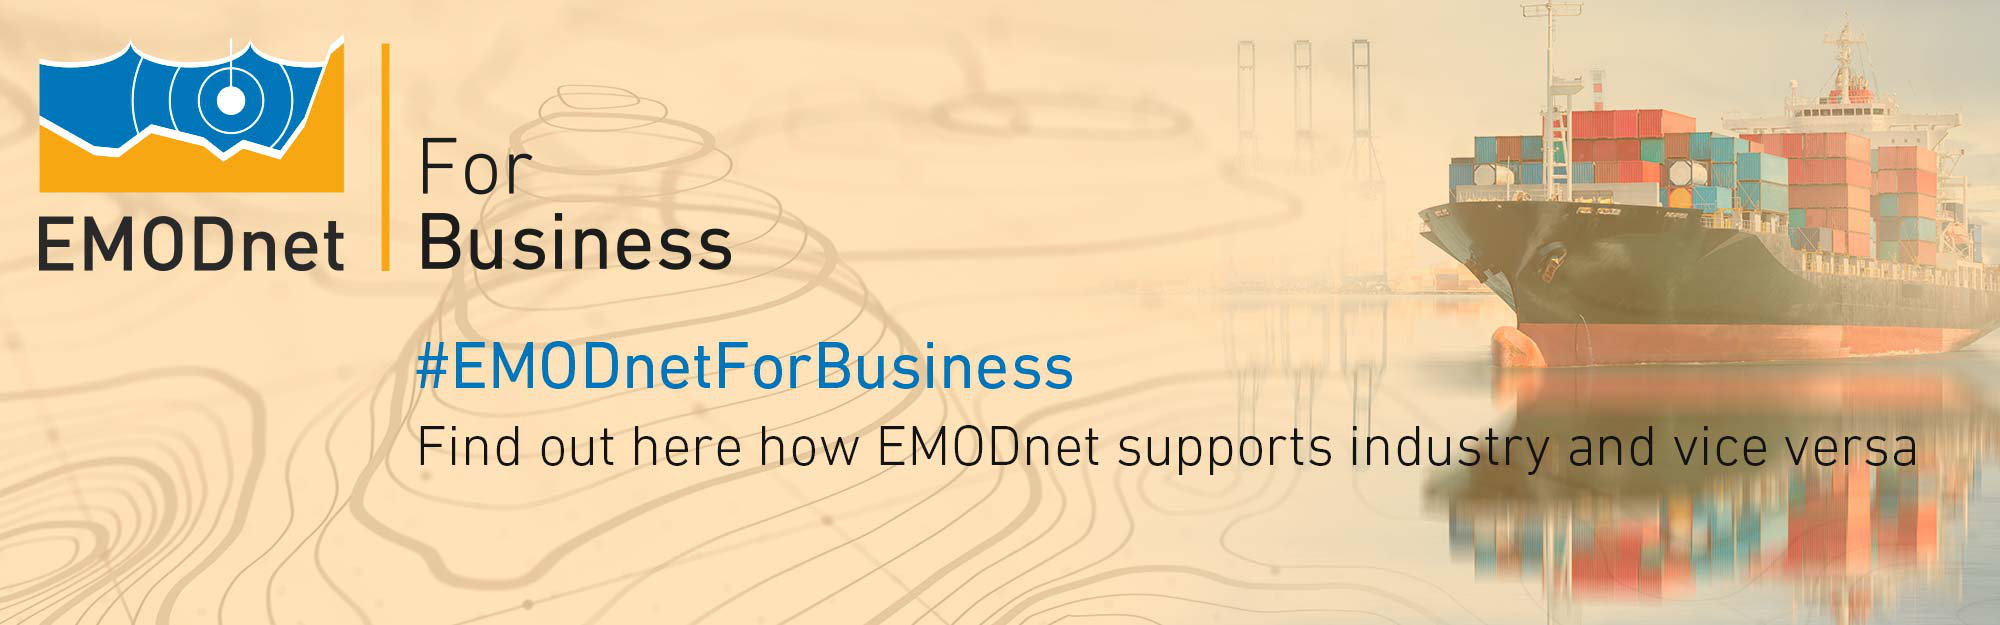 EMODnet for business